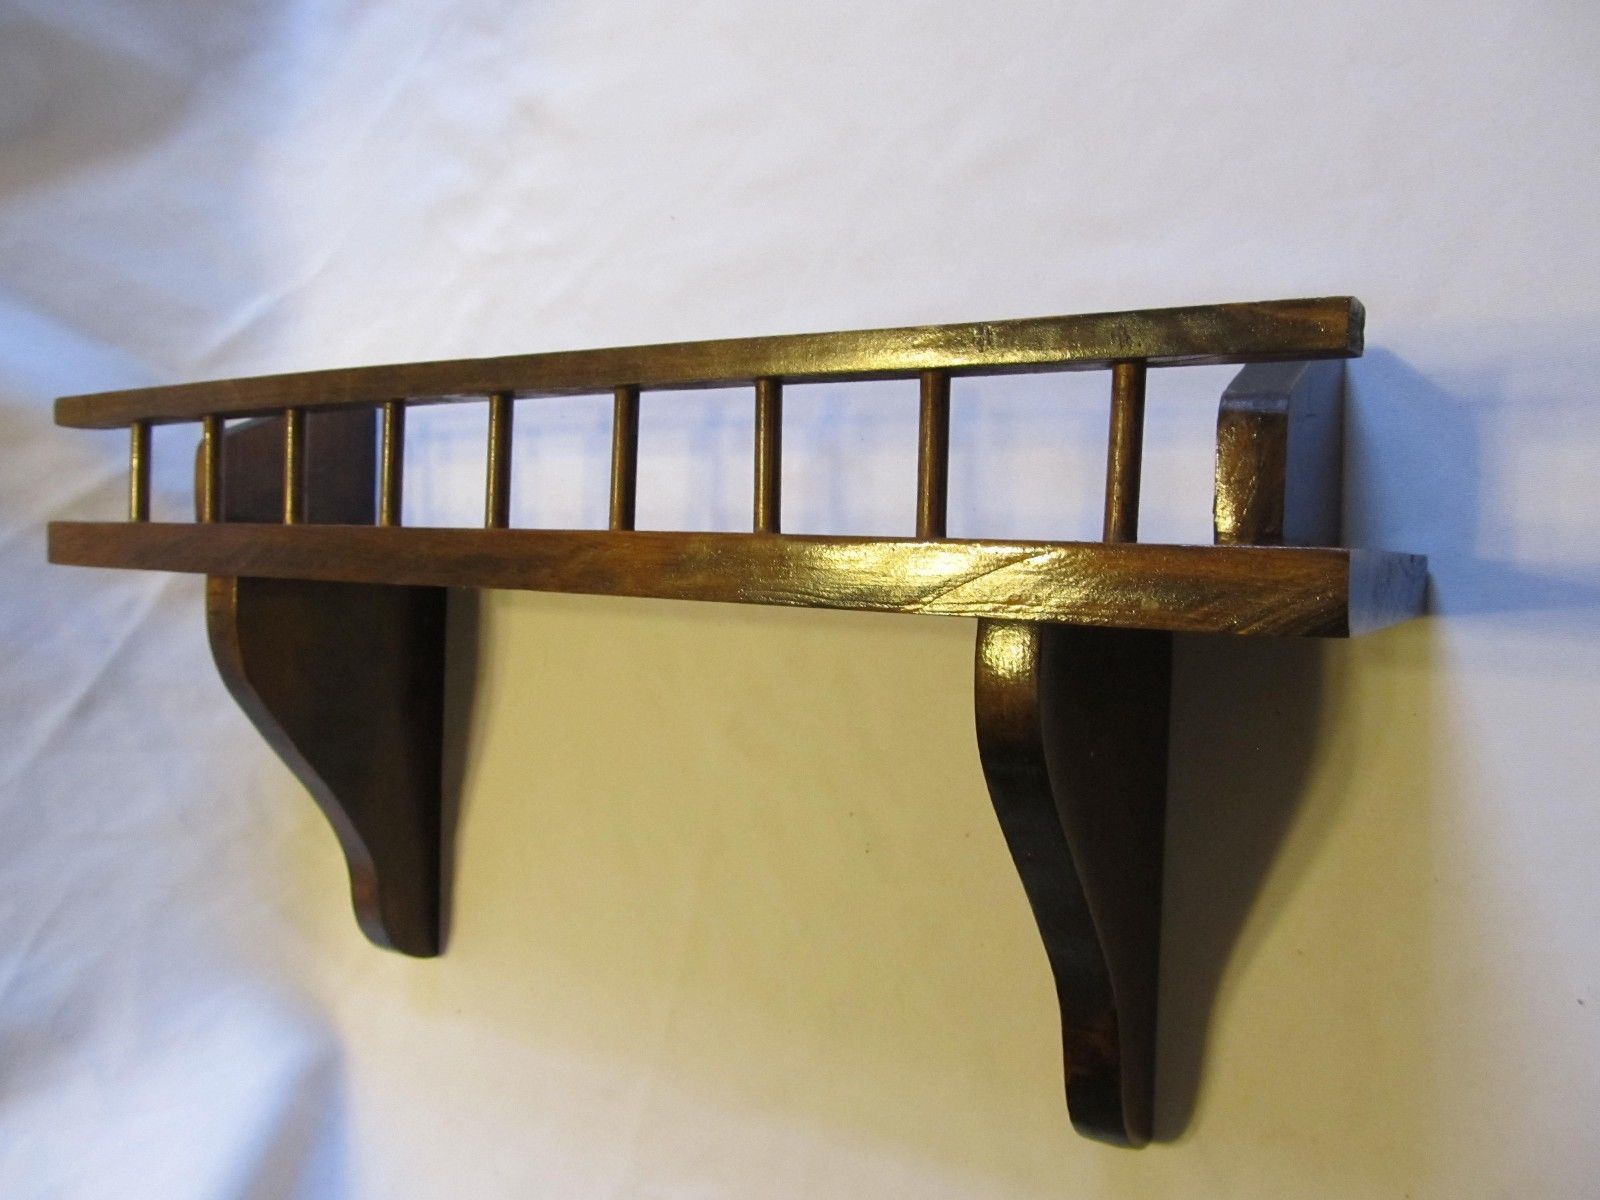 Wooden Plate Saucer Wall Display Shelf Rack Plate Racks & Hangers. Full resolution  file, nominally Width 1600 Height 1200 pixels, file with #614321.